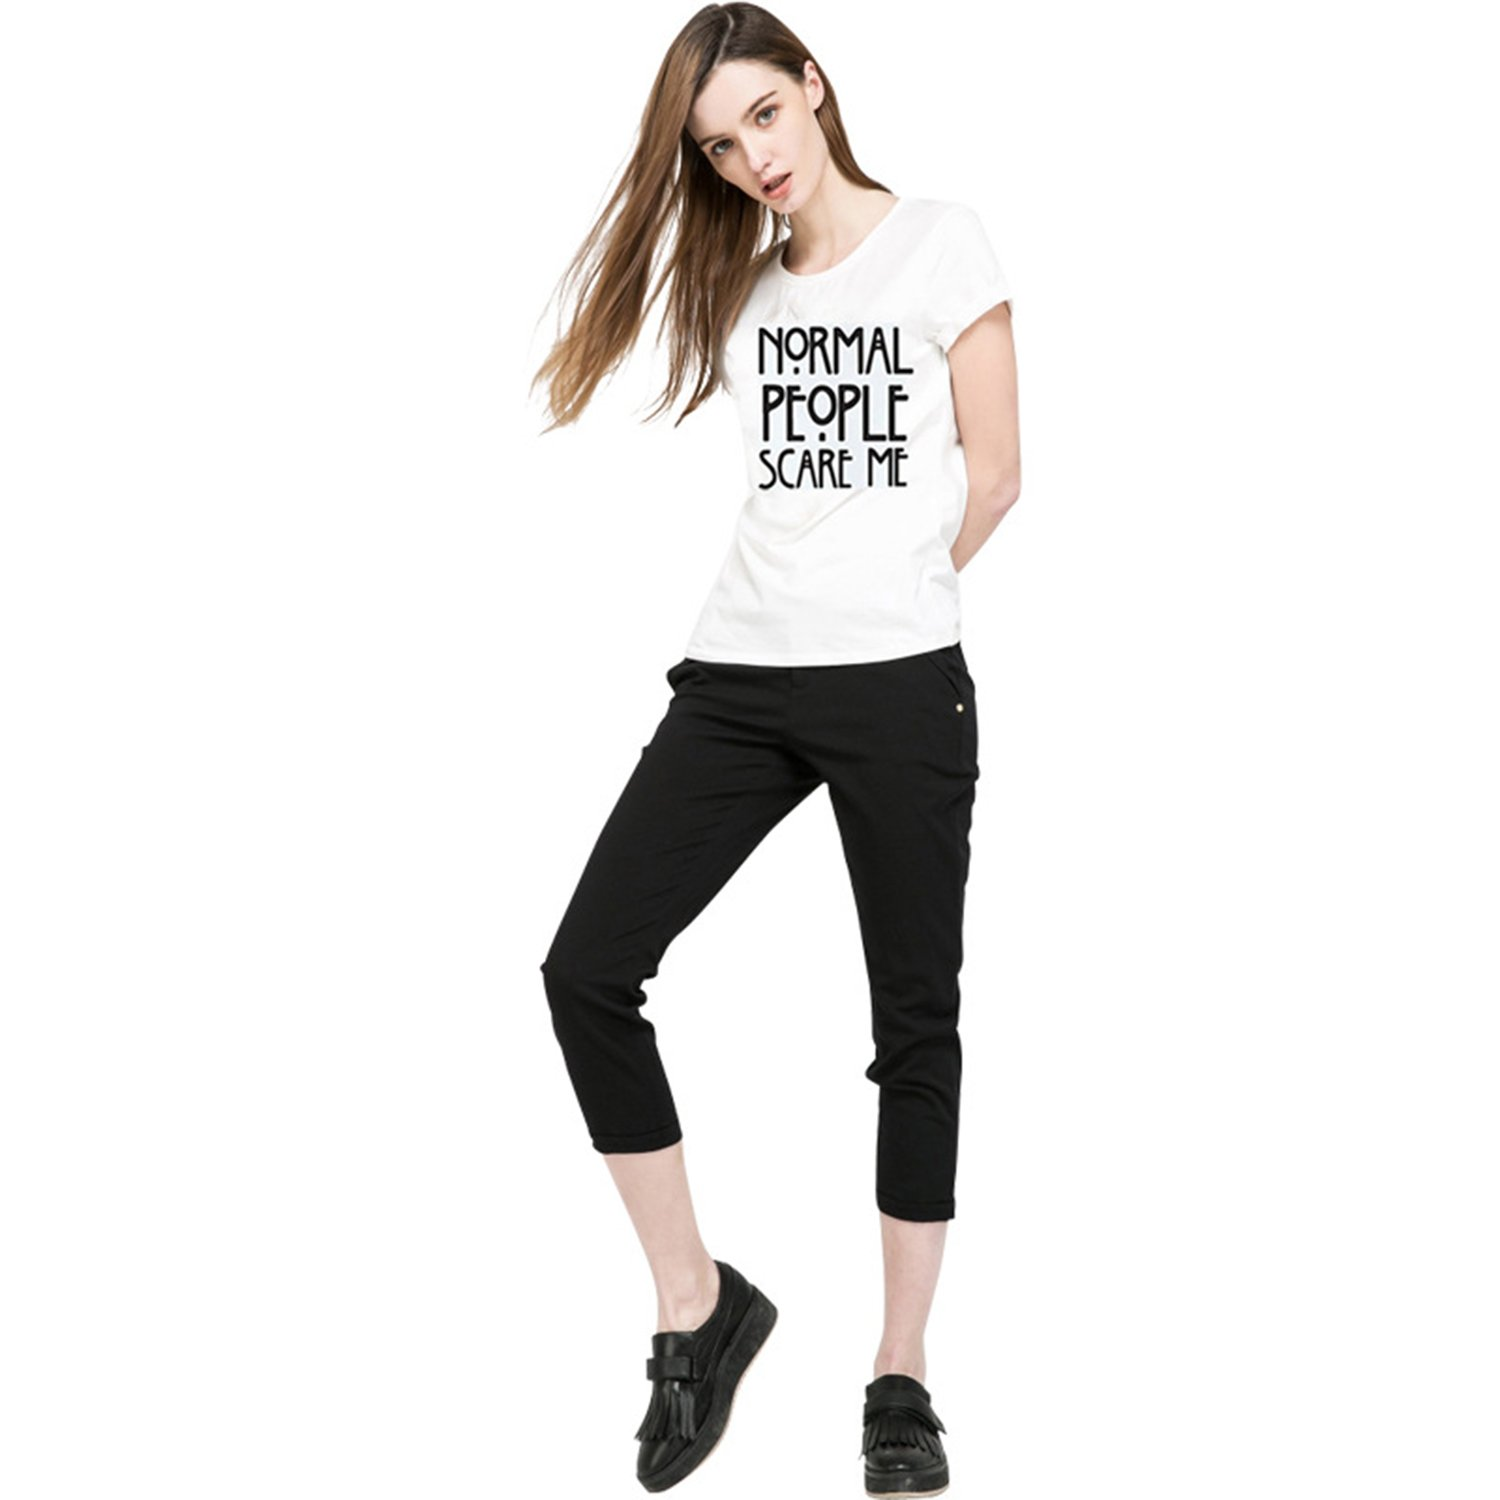 ZMvise Graphic Printed Letters Normal People Scare Me Women Girl T Shirt